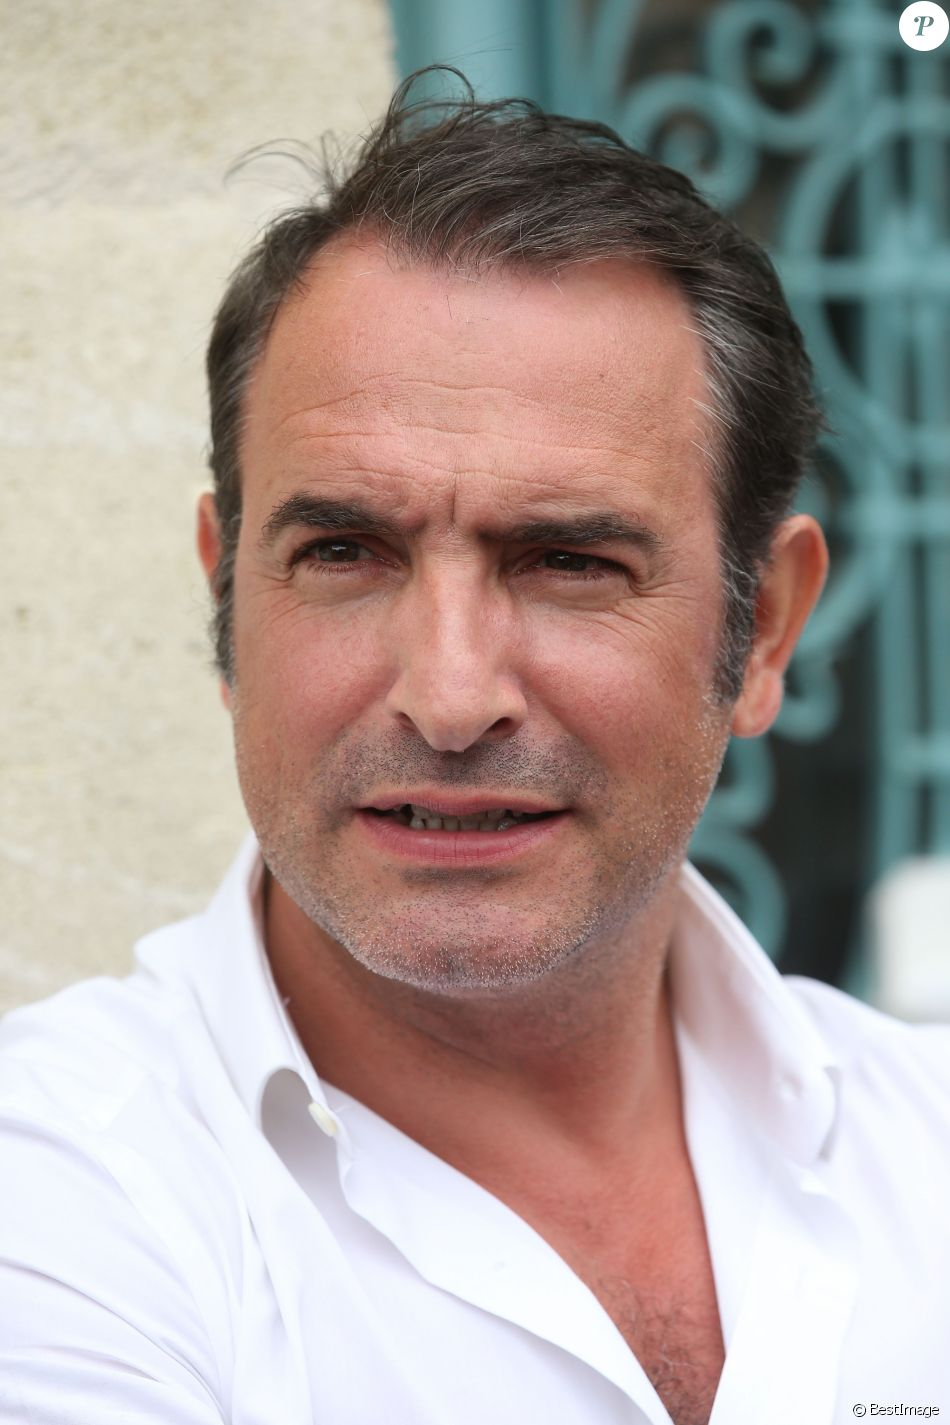 Jean dujardin encore priv de permis de conduire l for Jean dujardin photo